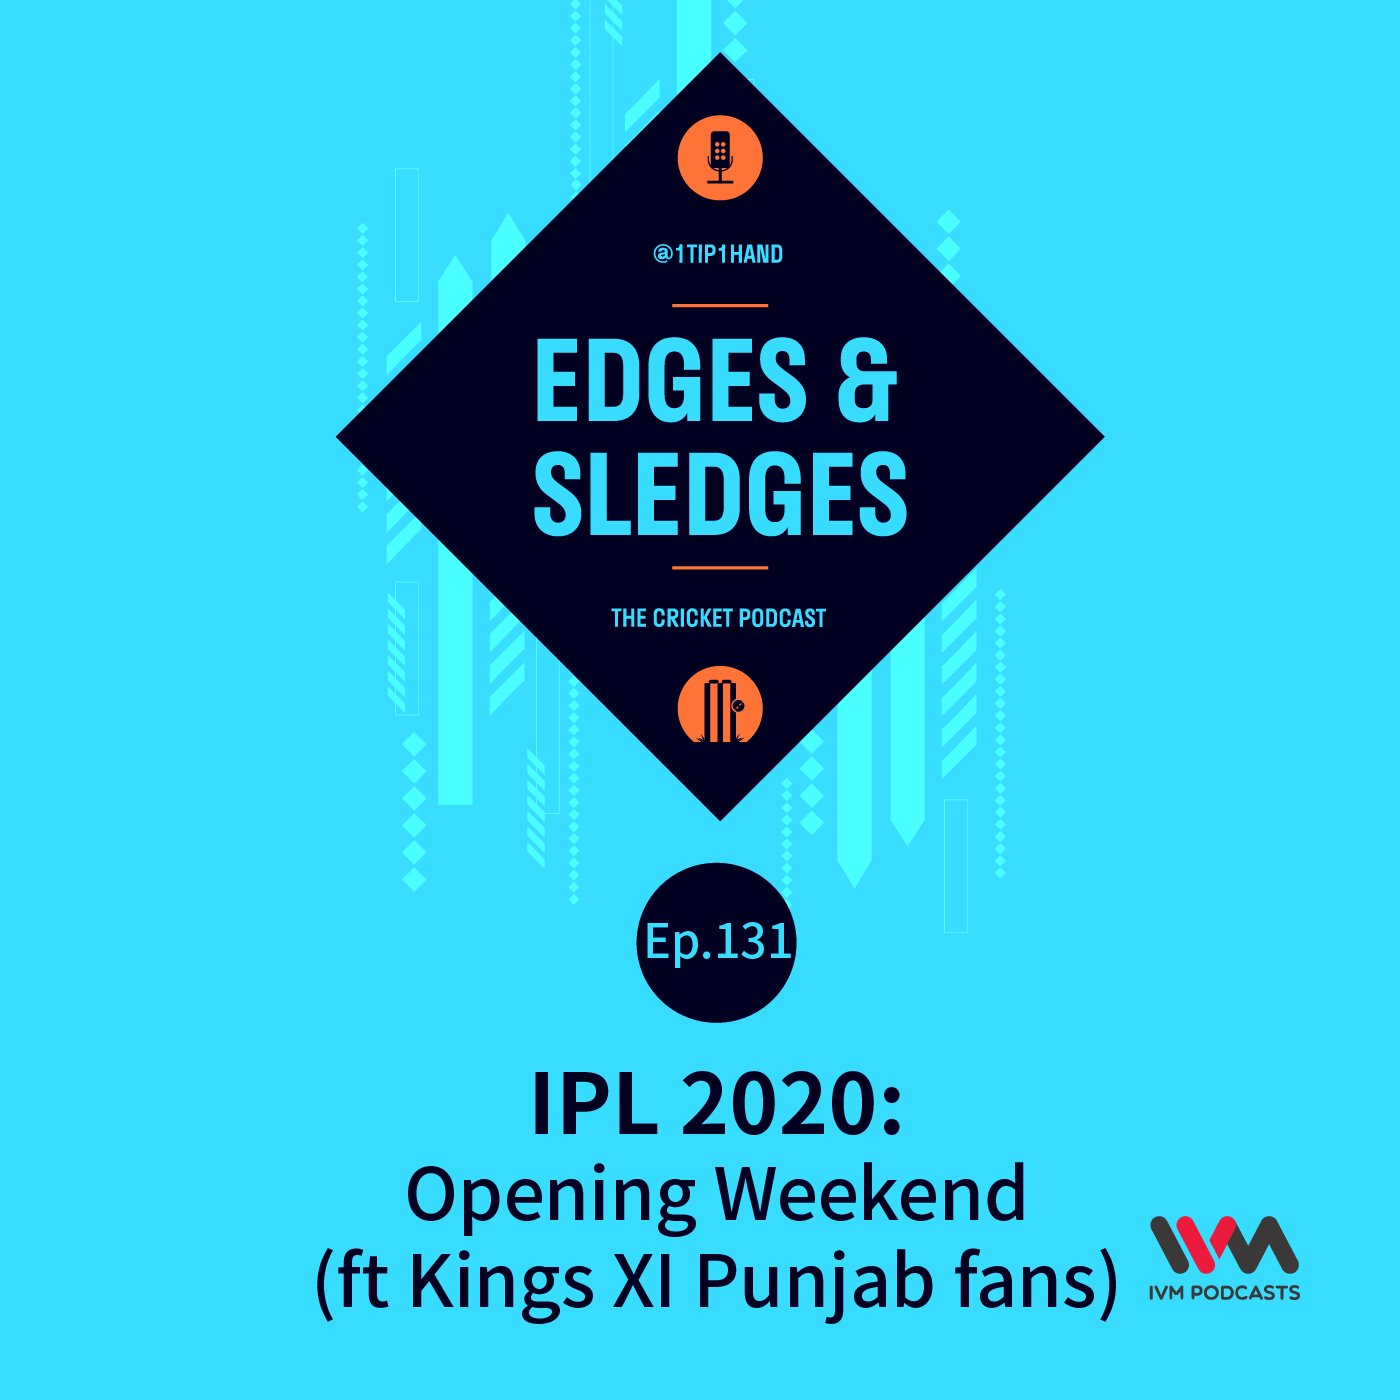 Ep. 131: IPL 2020: Opening Weekend (ft Kings XI Punjab fans)